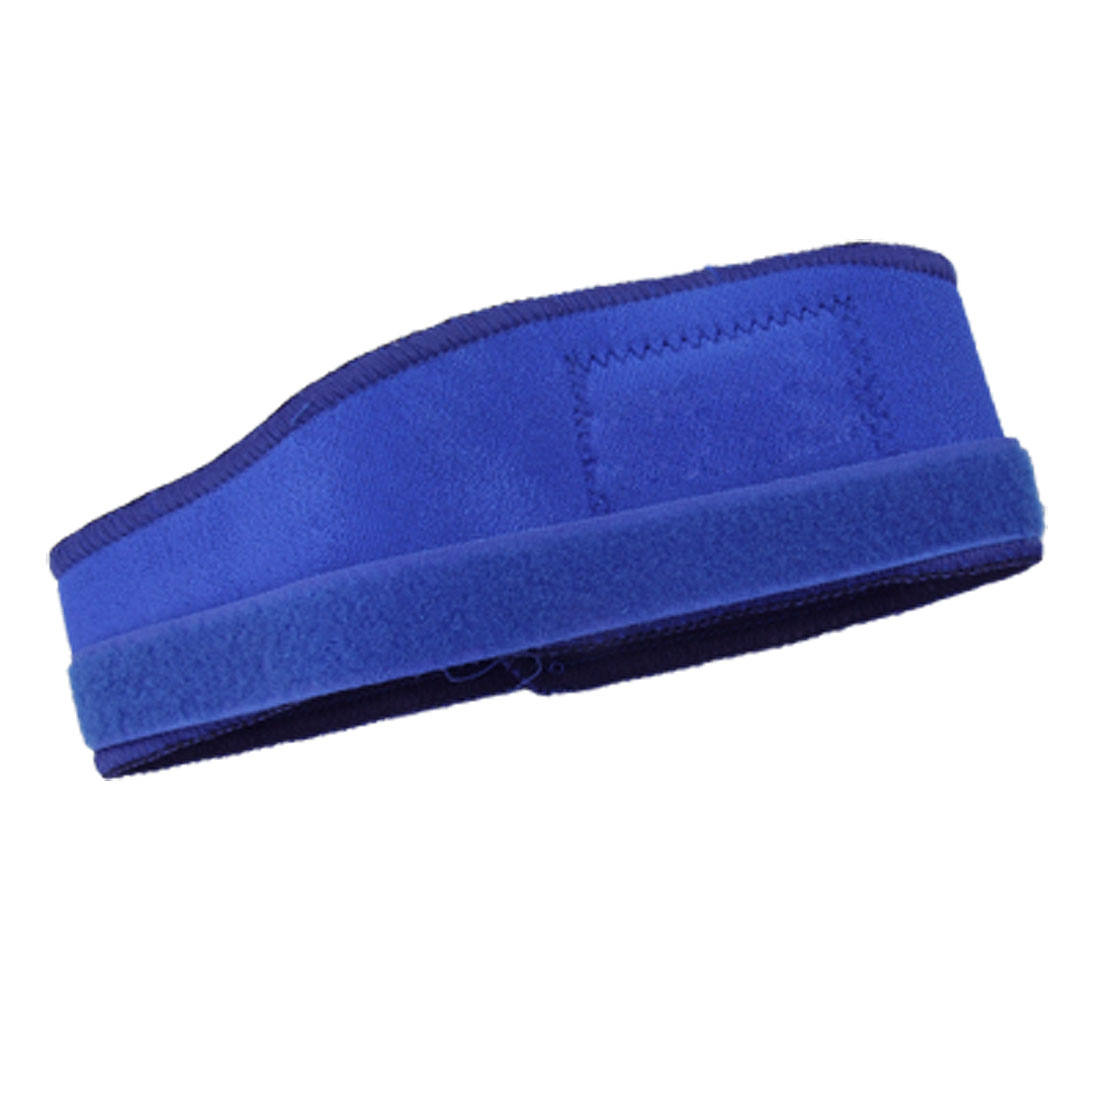 Blue Adjustable Neoprene Sports Knee Support Protector Pad